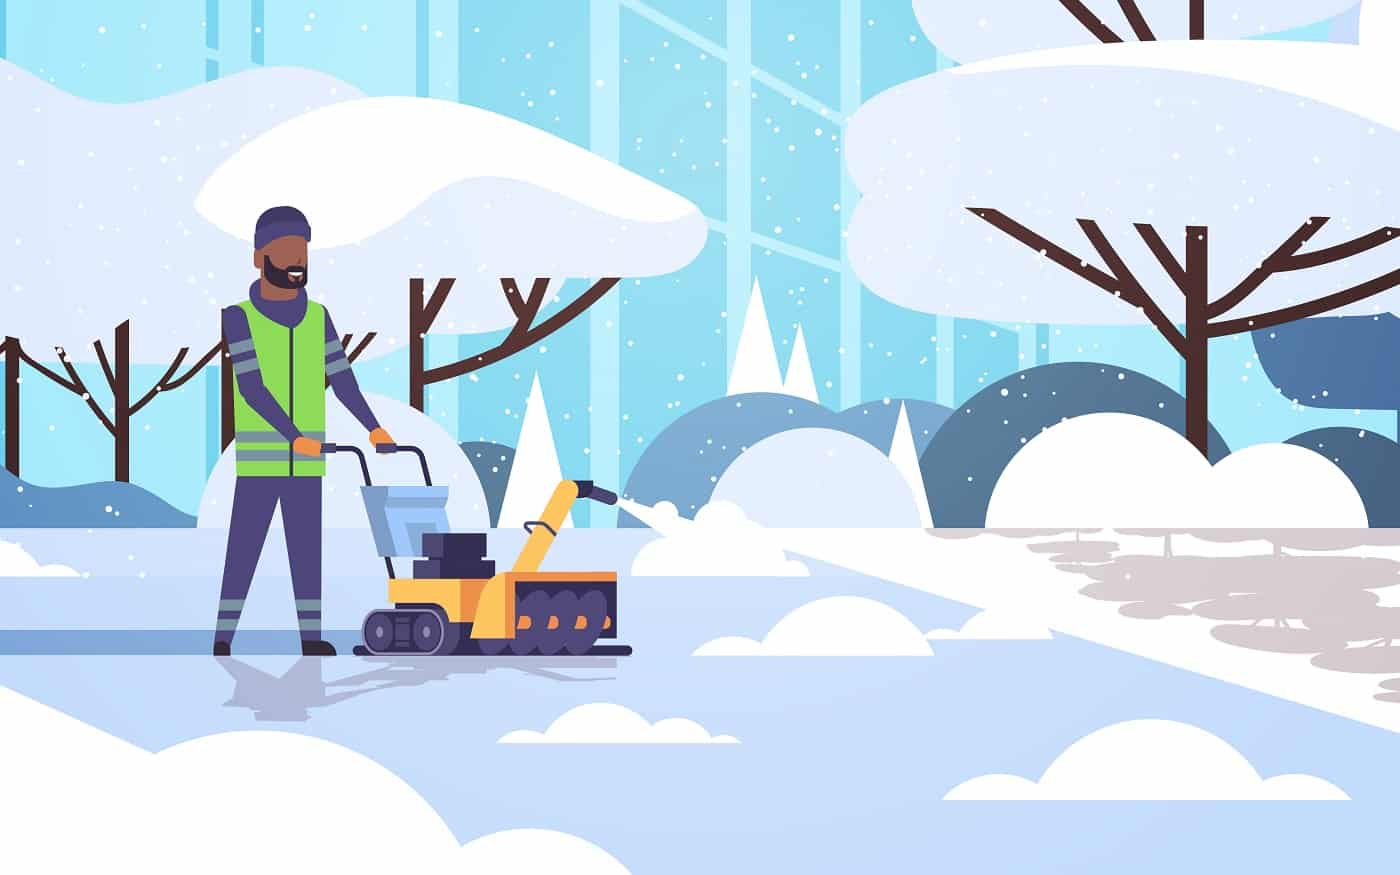 man cleaner in uniform using snowblower snow removal concept african american worker cleaning winter snowy park landscape background flat full length horizontal vector illustration